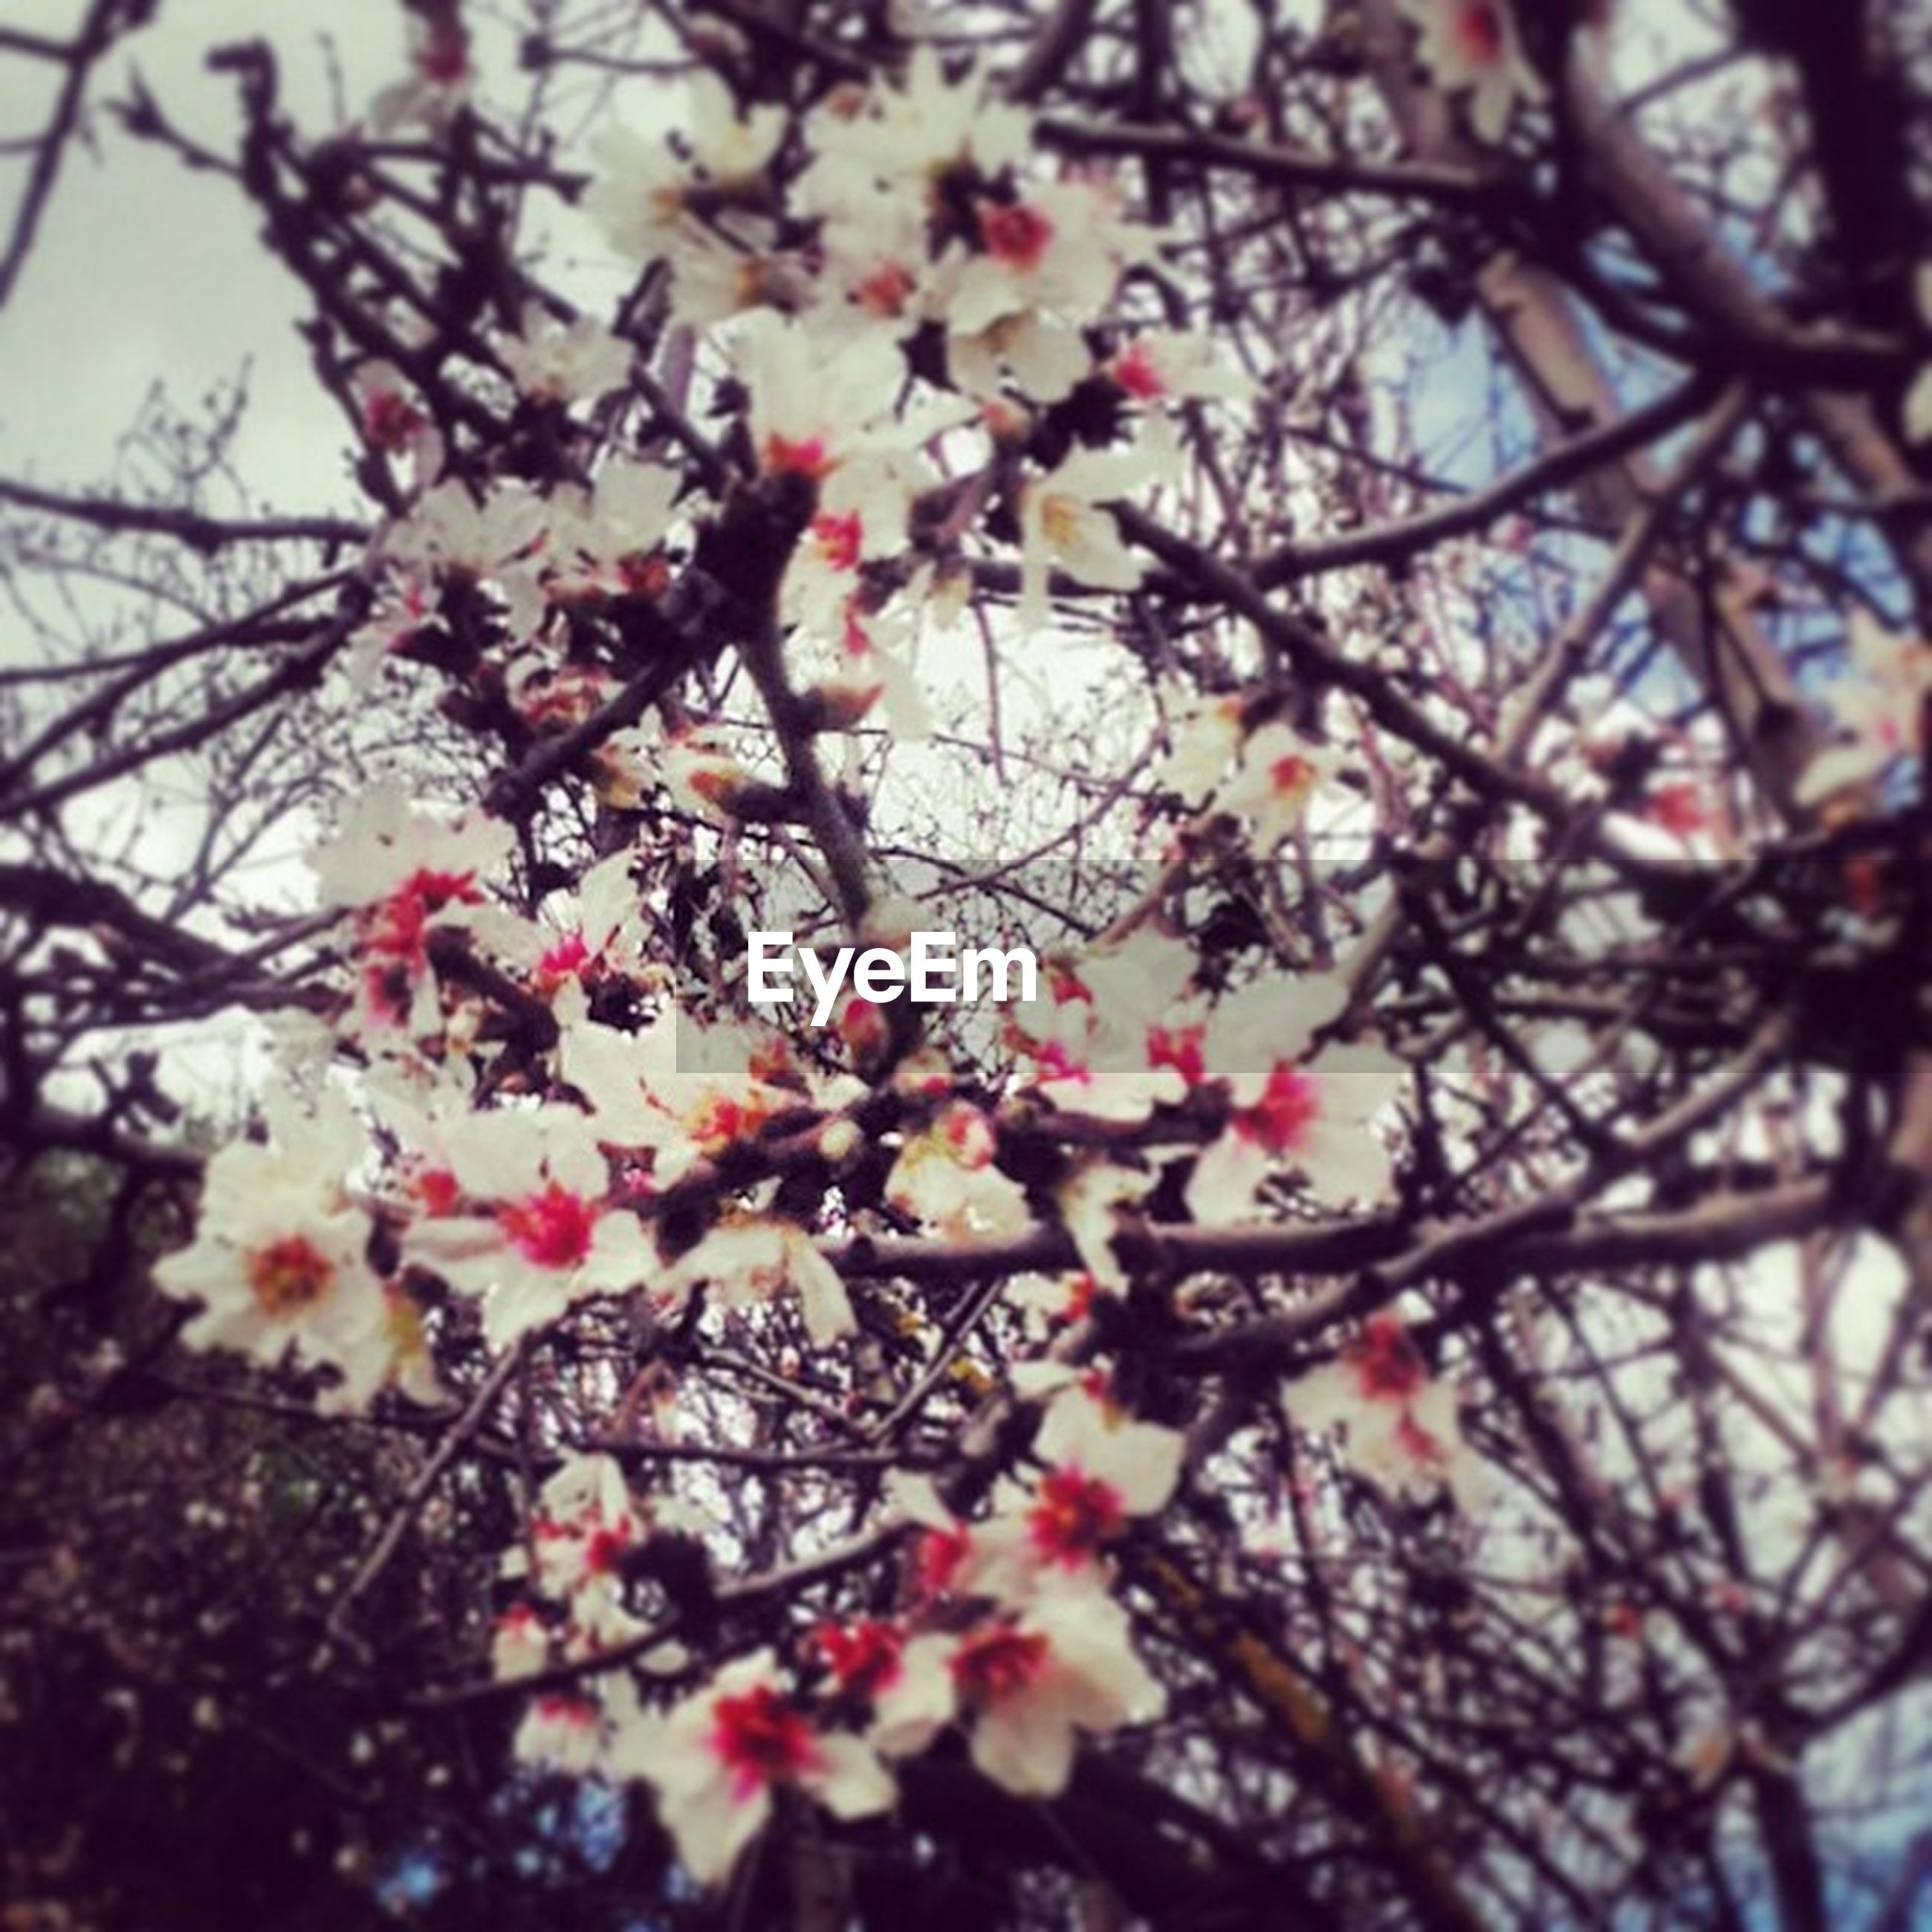 branch, flower, tree, growth, low angle view, freshness, beauty in nature, nature, fragility, pink color, blossom, cherry tree, twig, cherry blossom, focus on foreground, close-up, sky, outdoors, no people, springtime